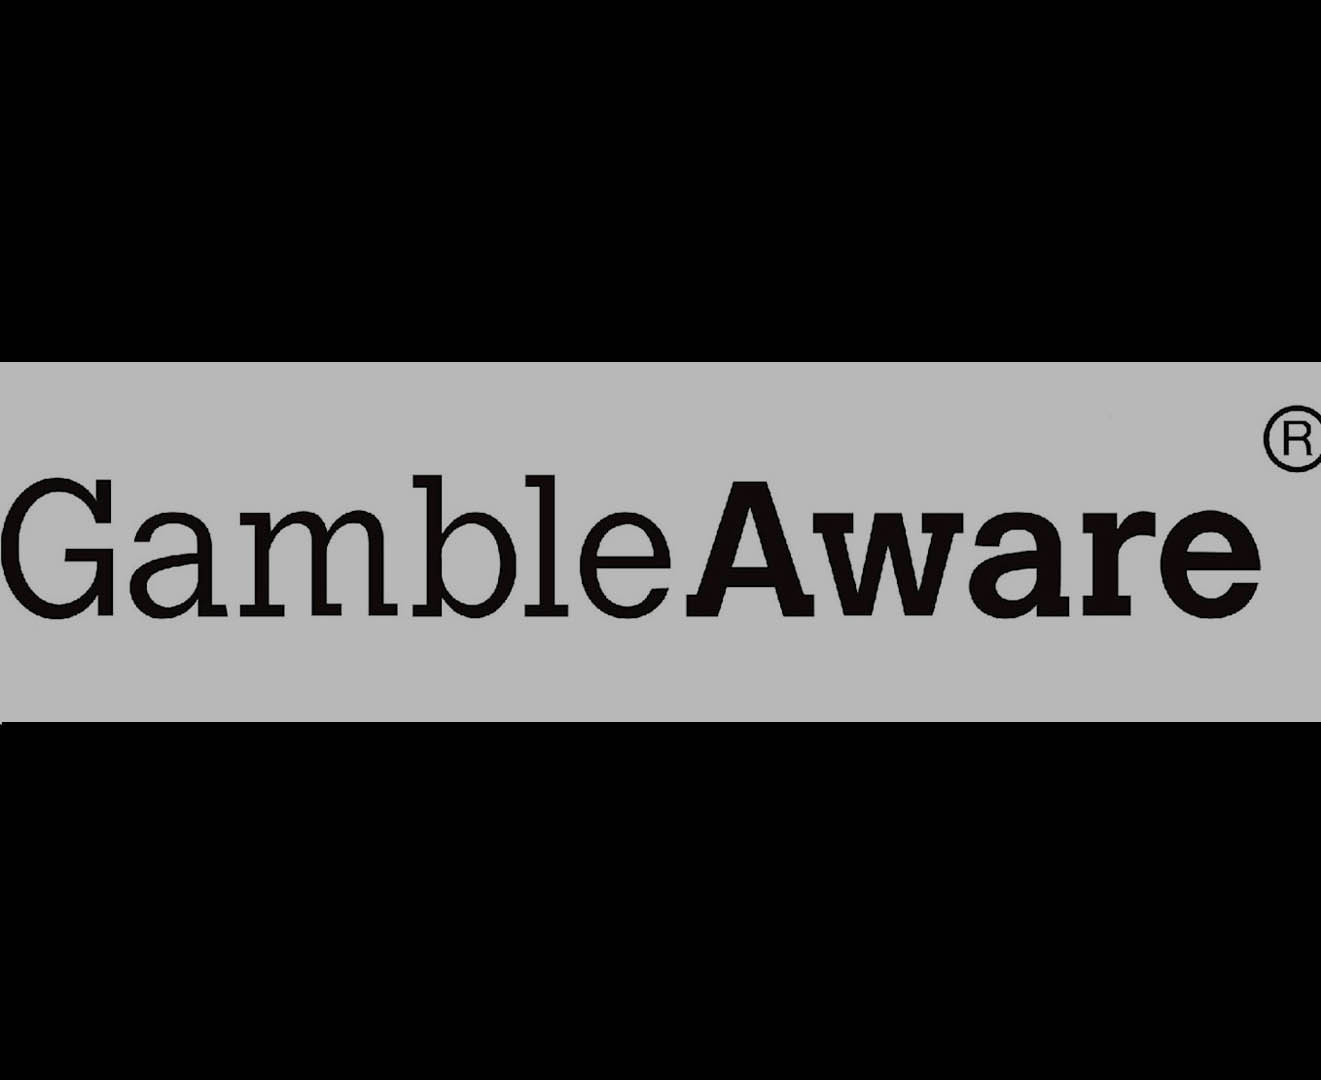 A Look at GambleAware's Open Letter Calling for Expansion of Preventative Treatments